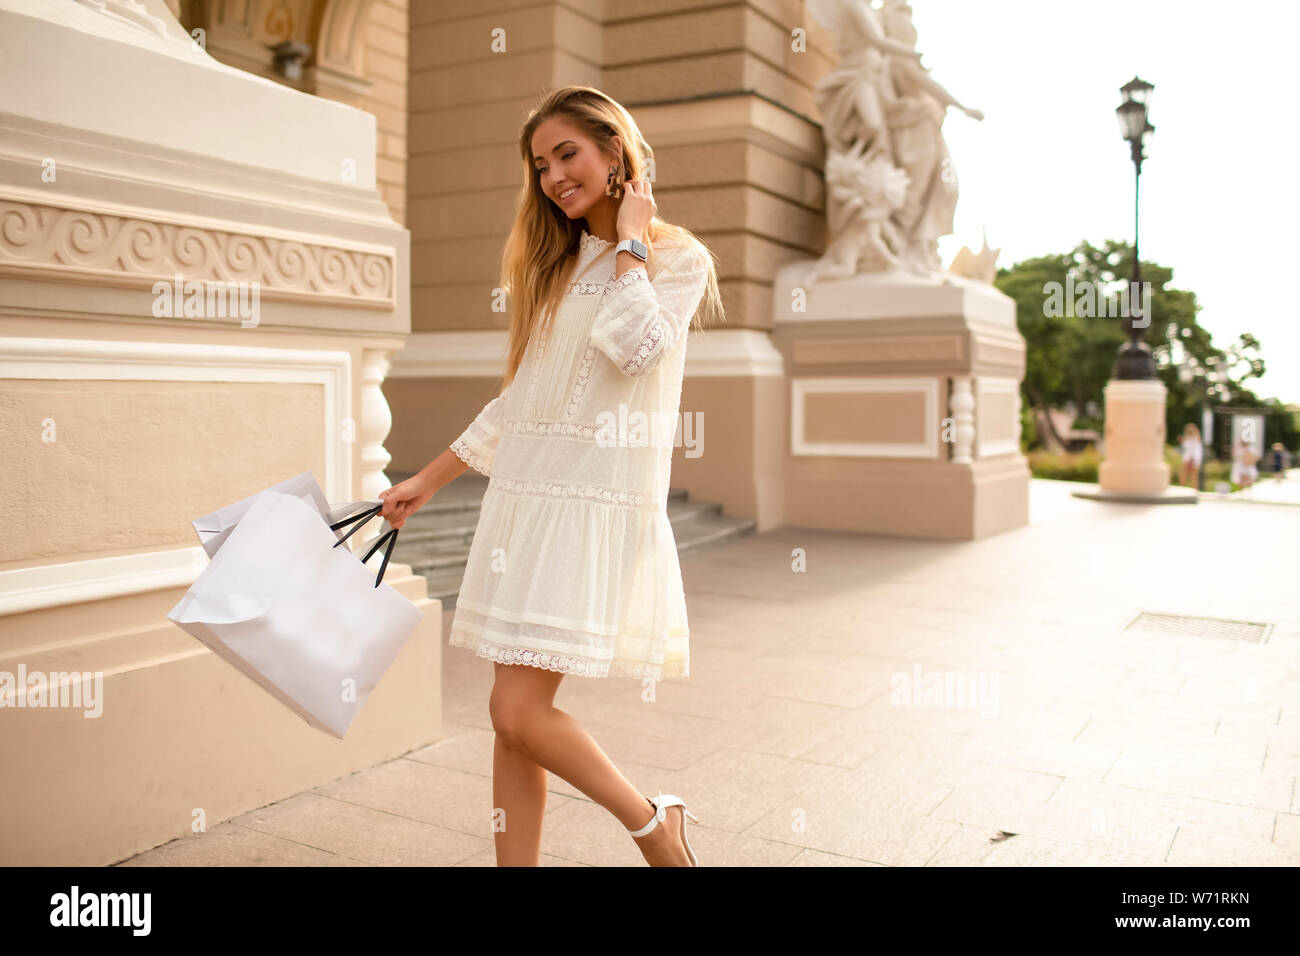 Young model like shopping and buy brand new fashionable clothes. Wearing stylish white summer dress and high heel shoes. Bags with stuff in her hand. Stock Photo